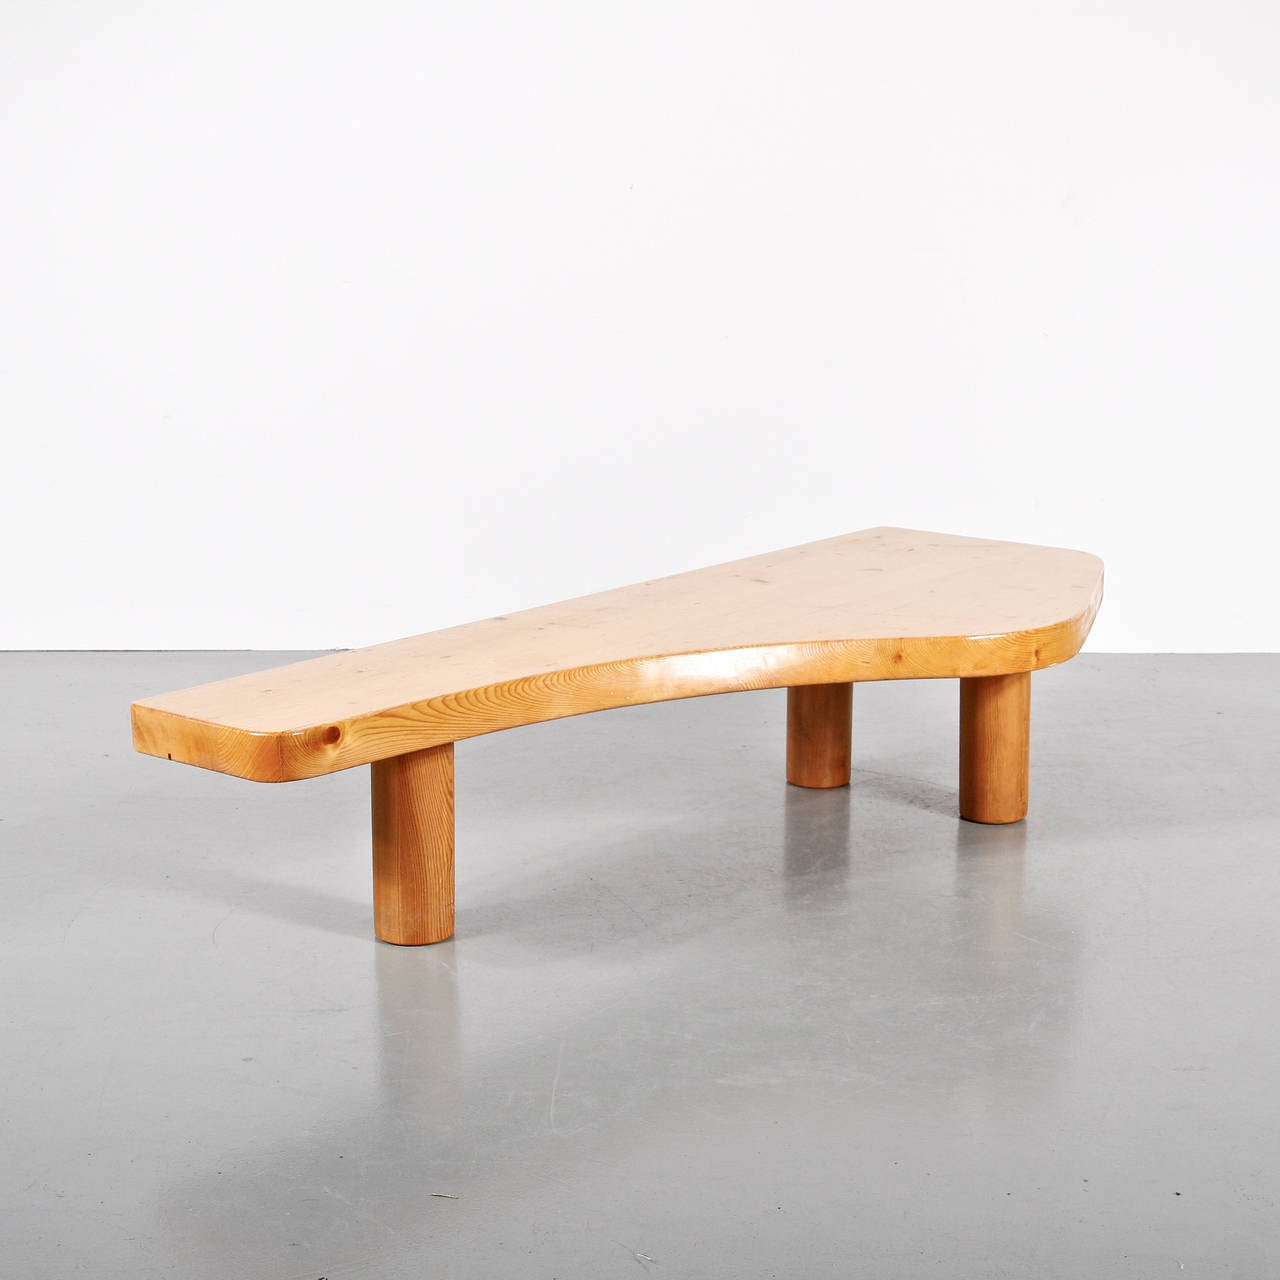 charlotte perriand coffee table circa 1960 for sale at 1stdibs. Black Bedroom Furniture Sets. Home Design Ideas